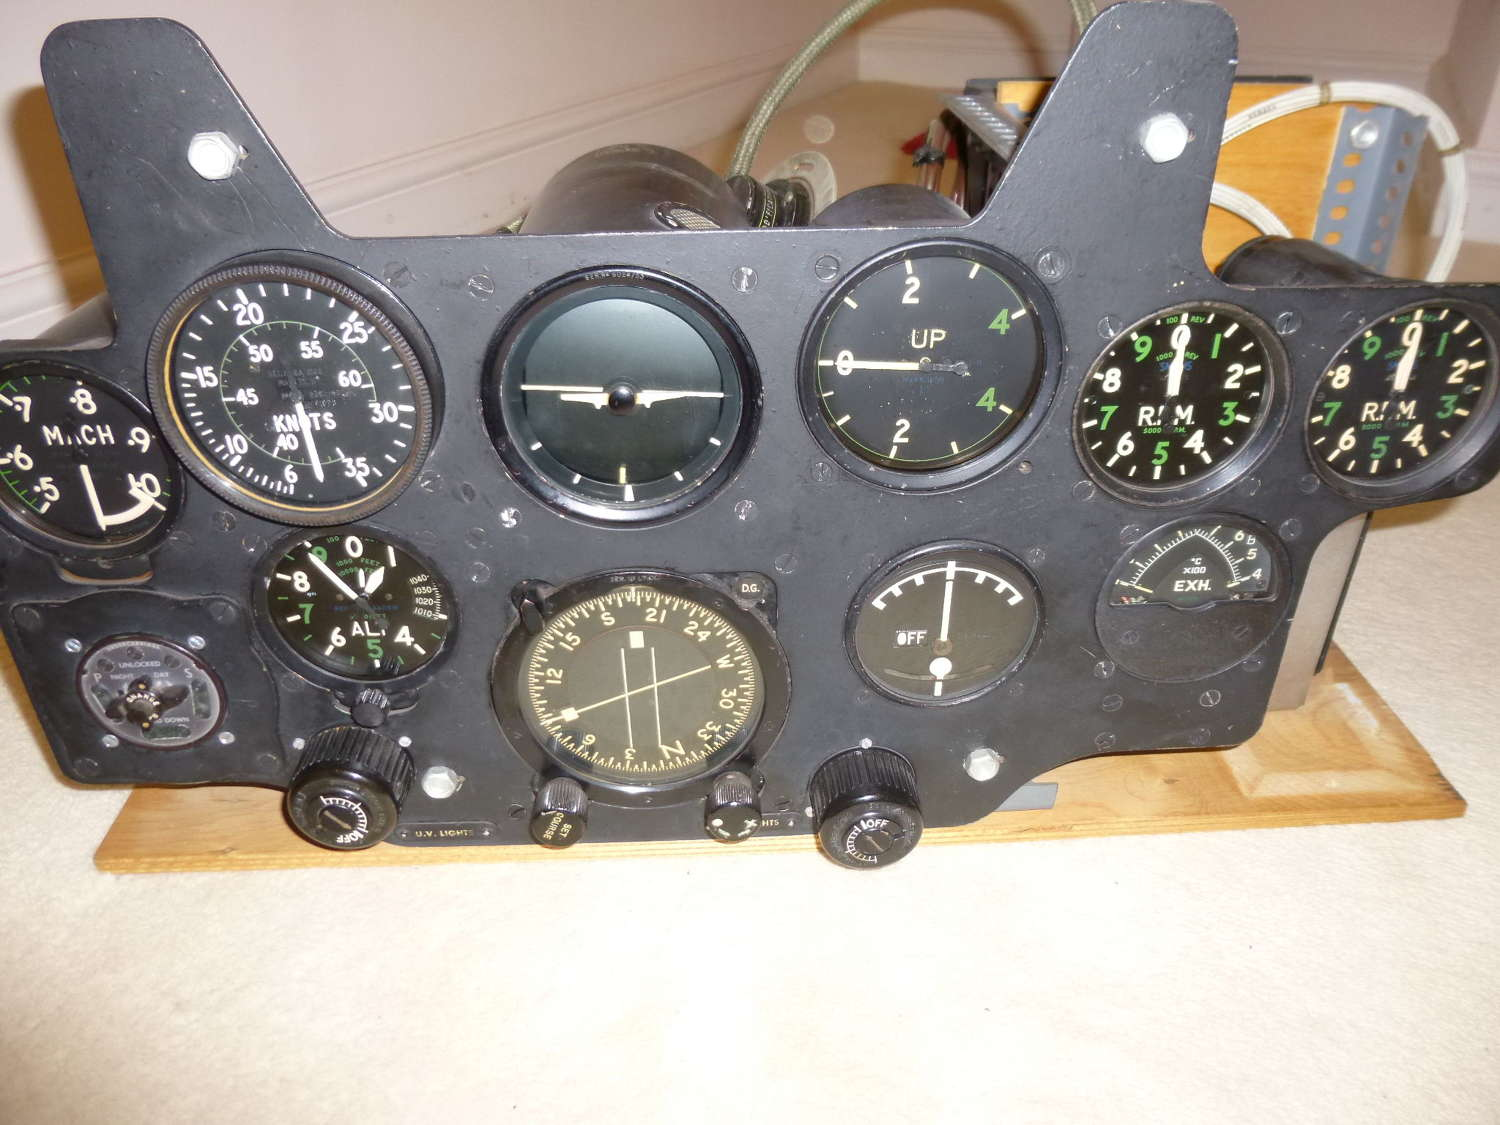 RAF Gloster Meteor main instrument panel